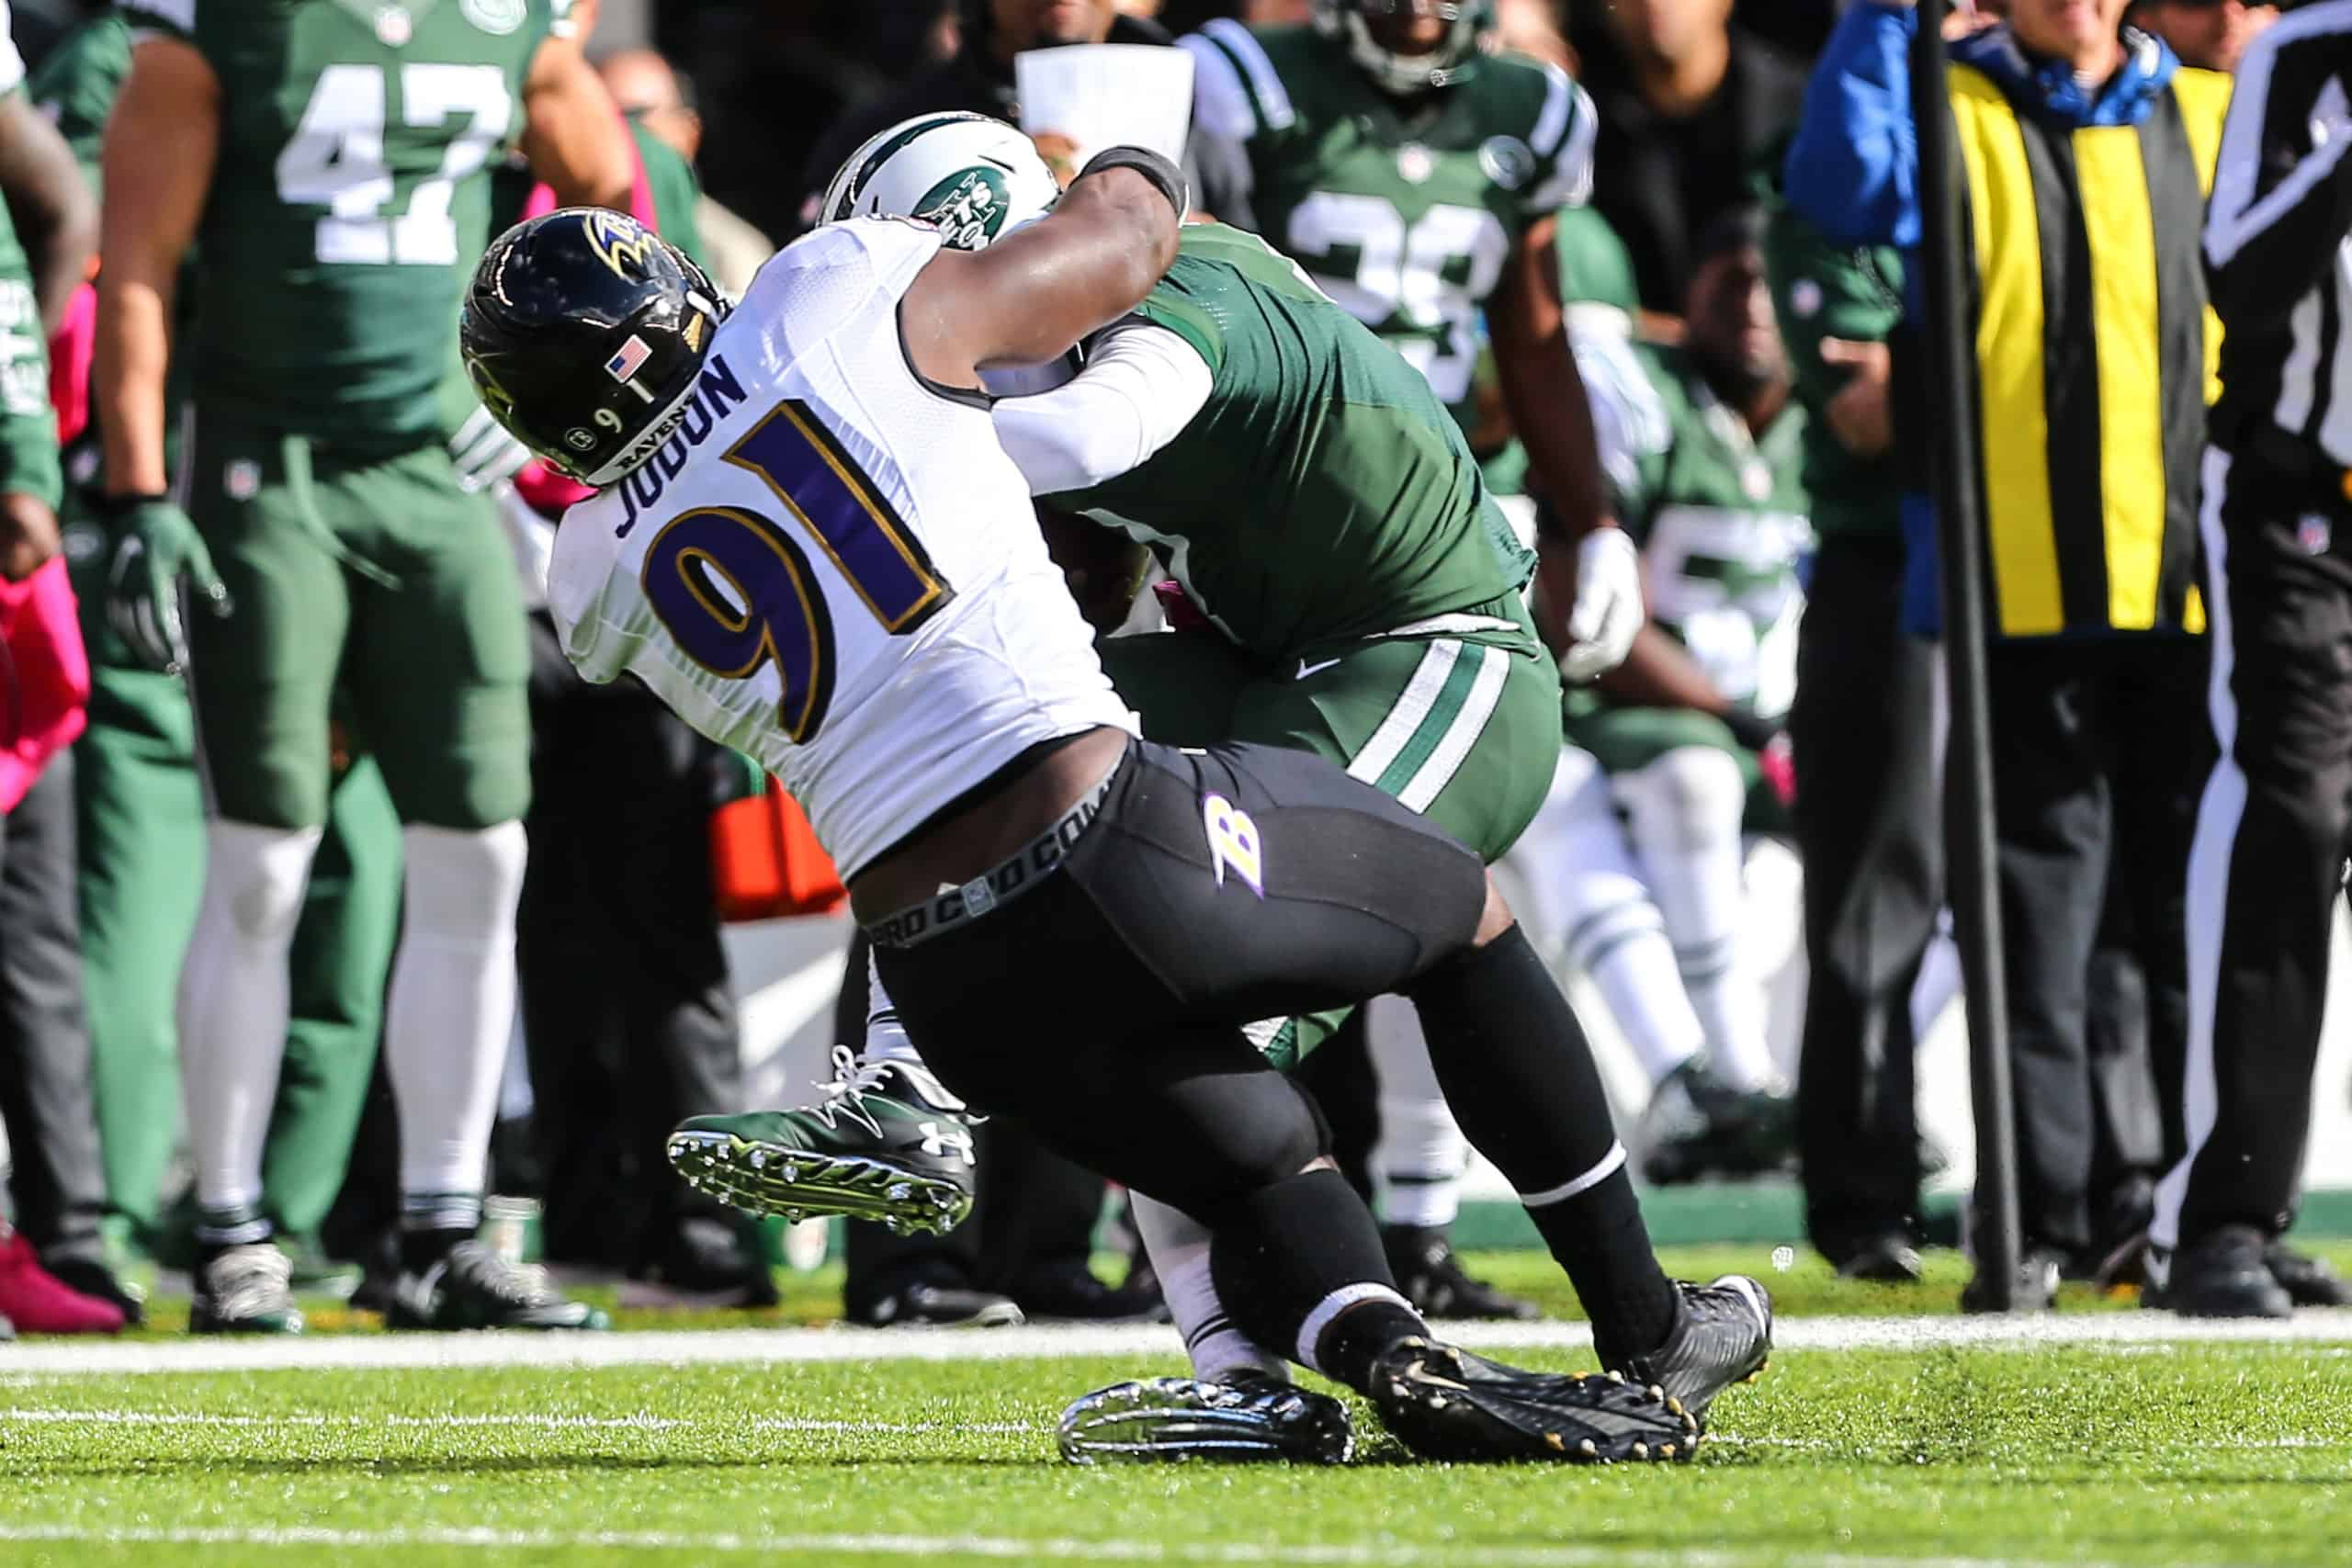 Jets Vs Ravens Fantasy Football Worksheet Week 15 Sharp Football Check out the 2000 week 17 game highlights between the new york jets and baltimore ravens! jets vs ravens fantasy football